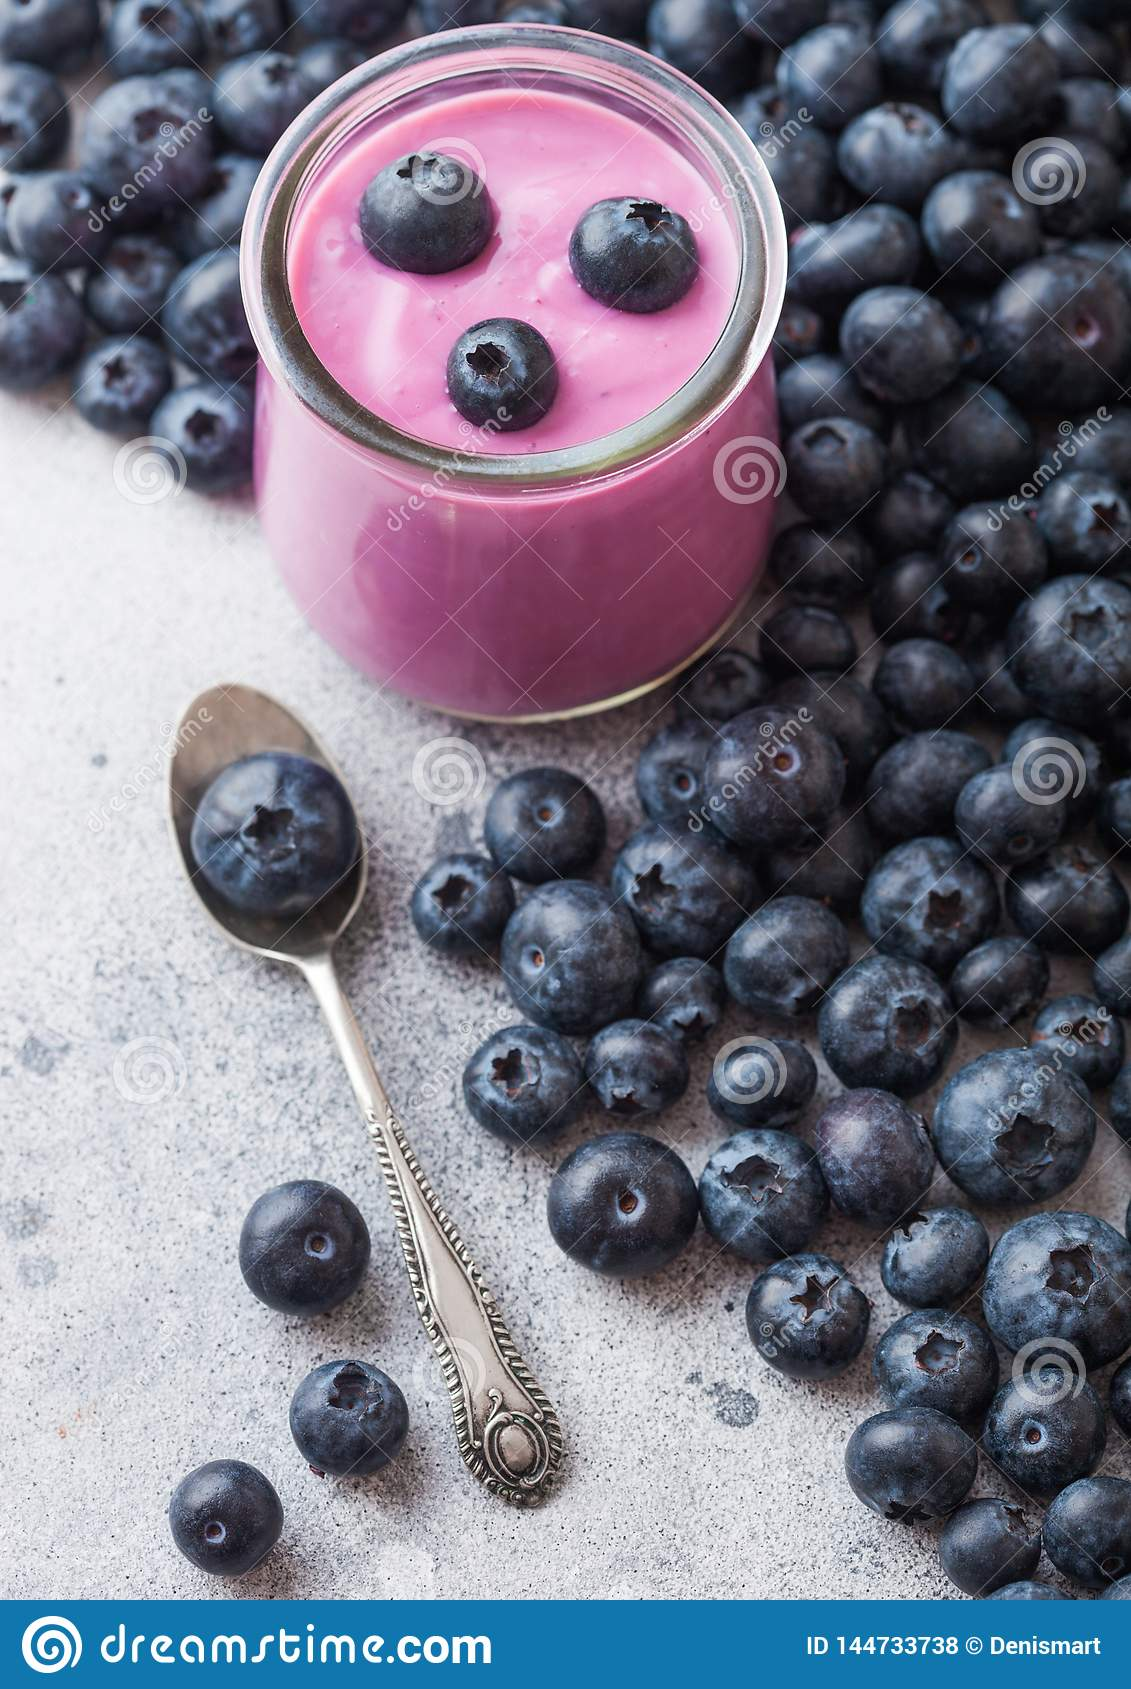 Fresh hommemade creamy blueberry yoghurt with fresh blueberries and silver spoon on stone kitchen table background